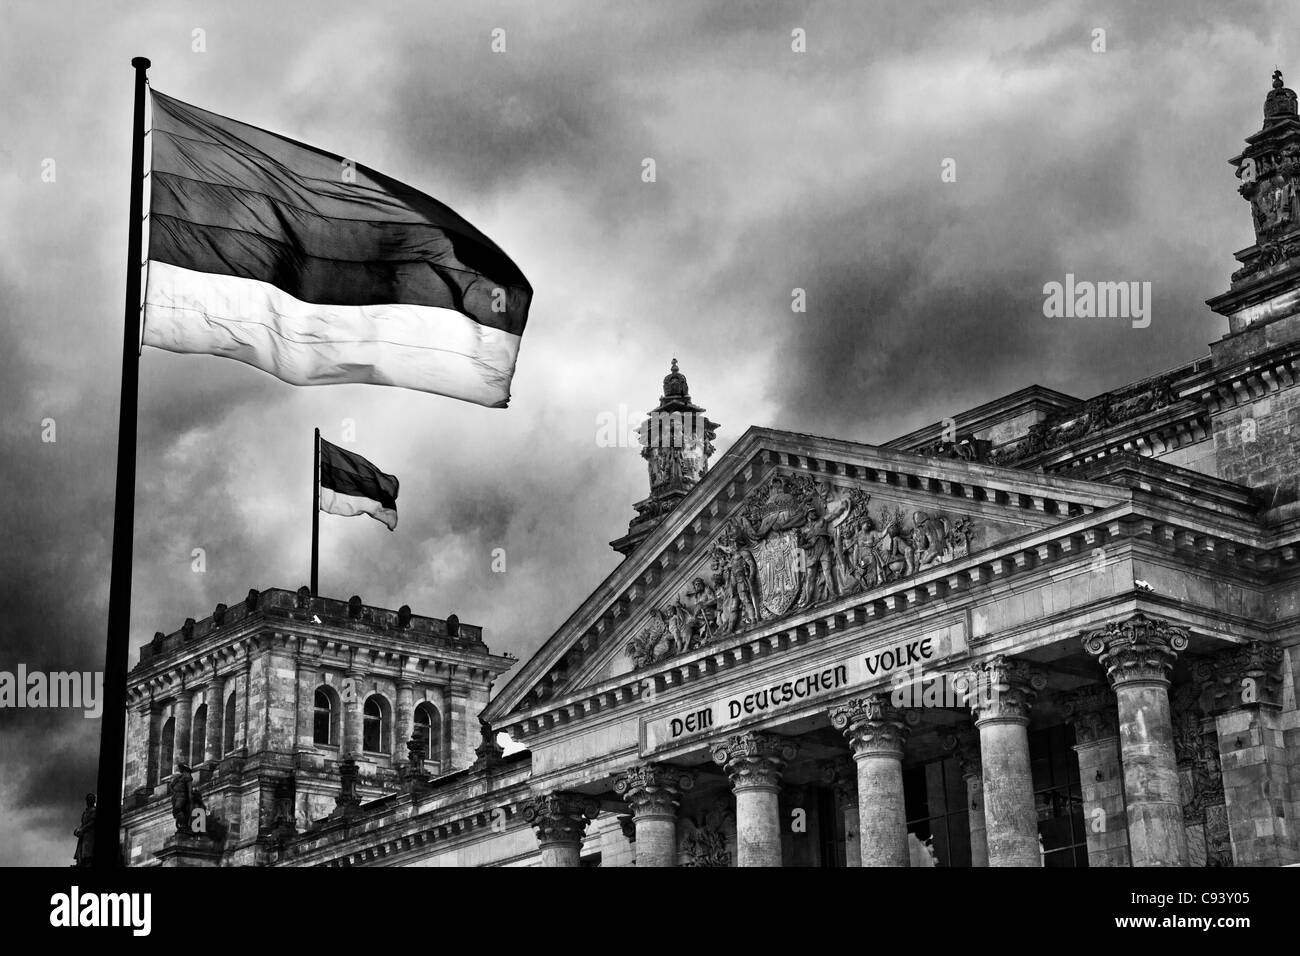 Storm clouds over the Reichstag, German Parliament, in Berlin, Germany. Colour version available at C93XXG and C93Y2F - Stock Image